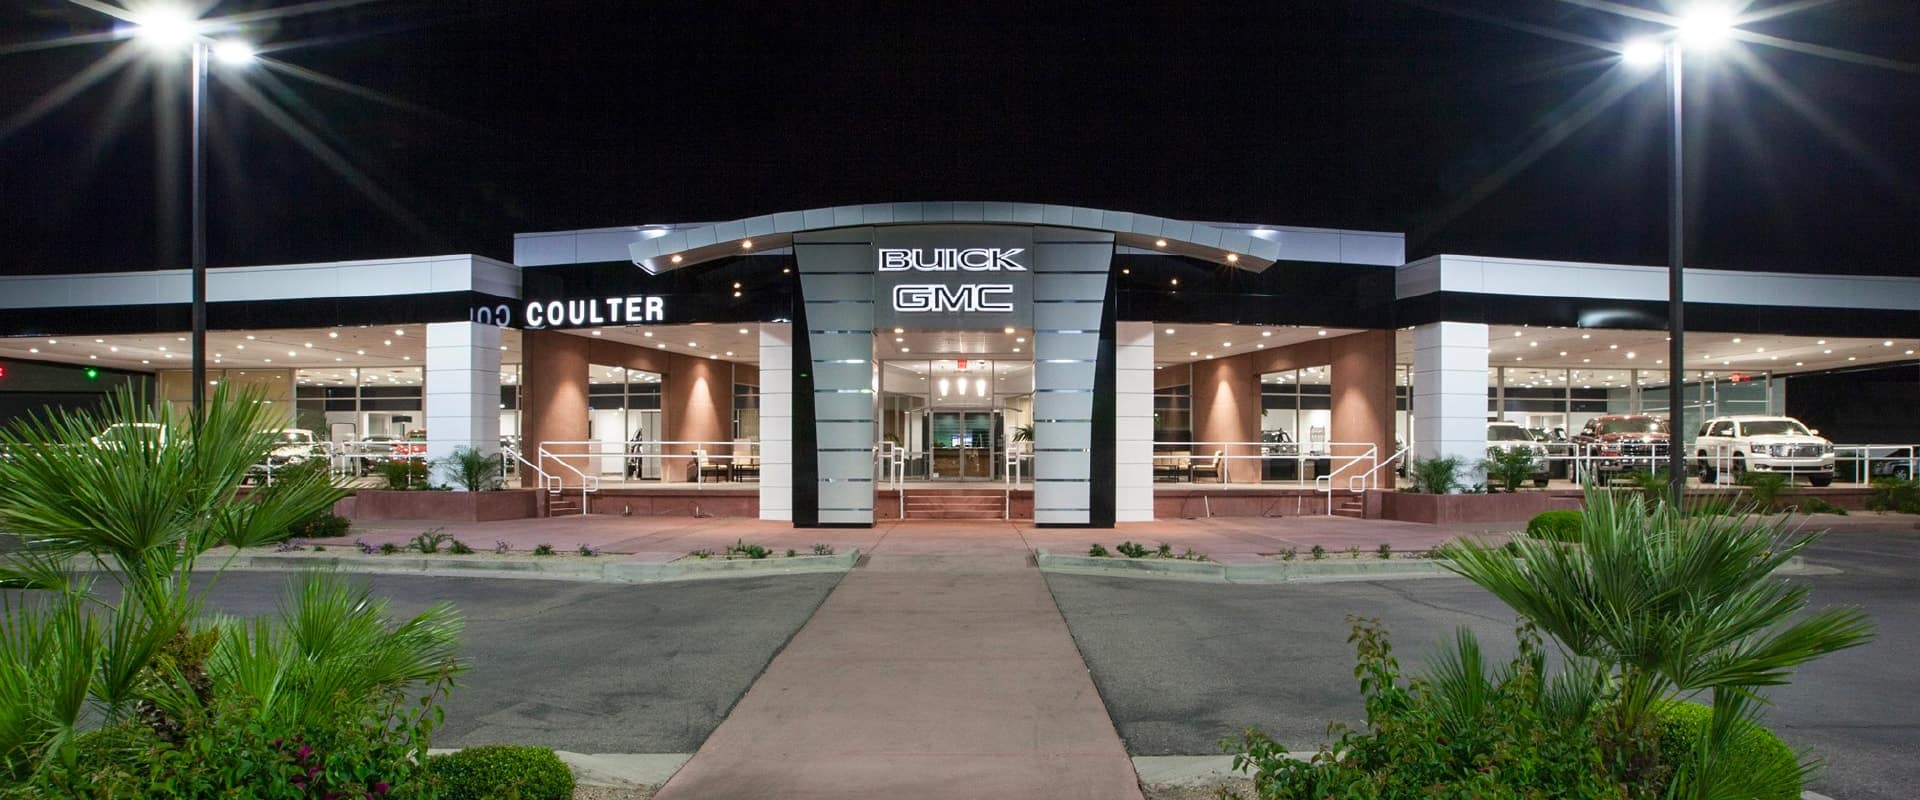 Coulter Buick GMC